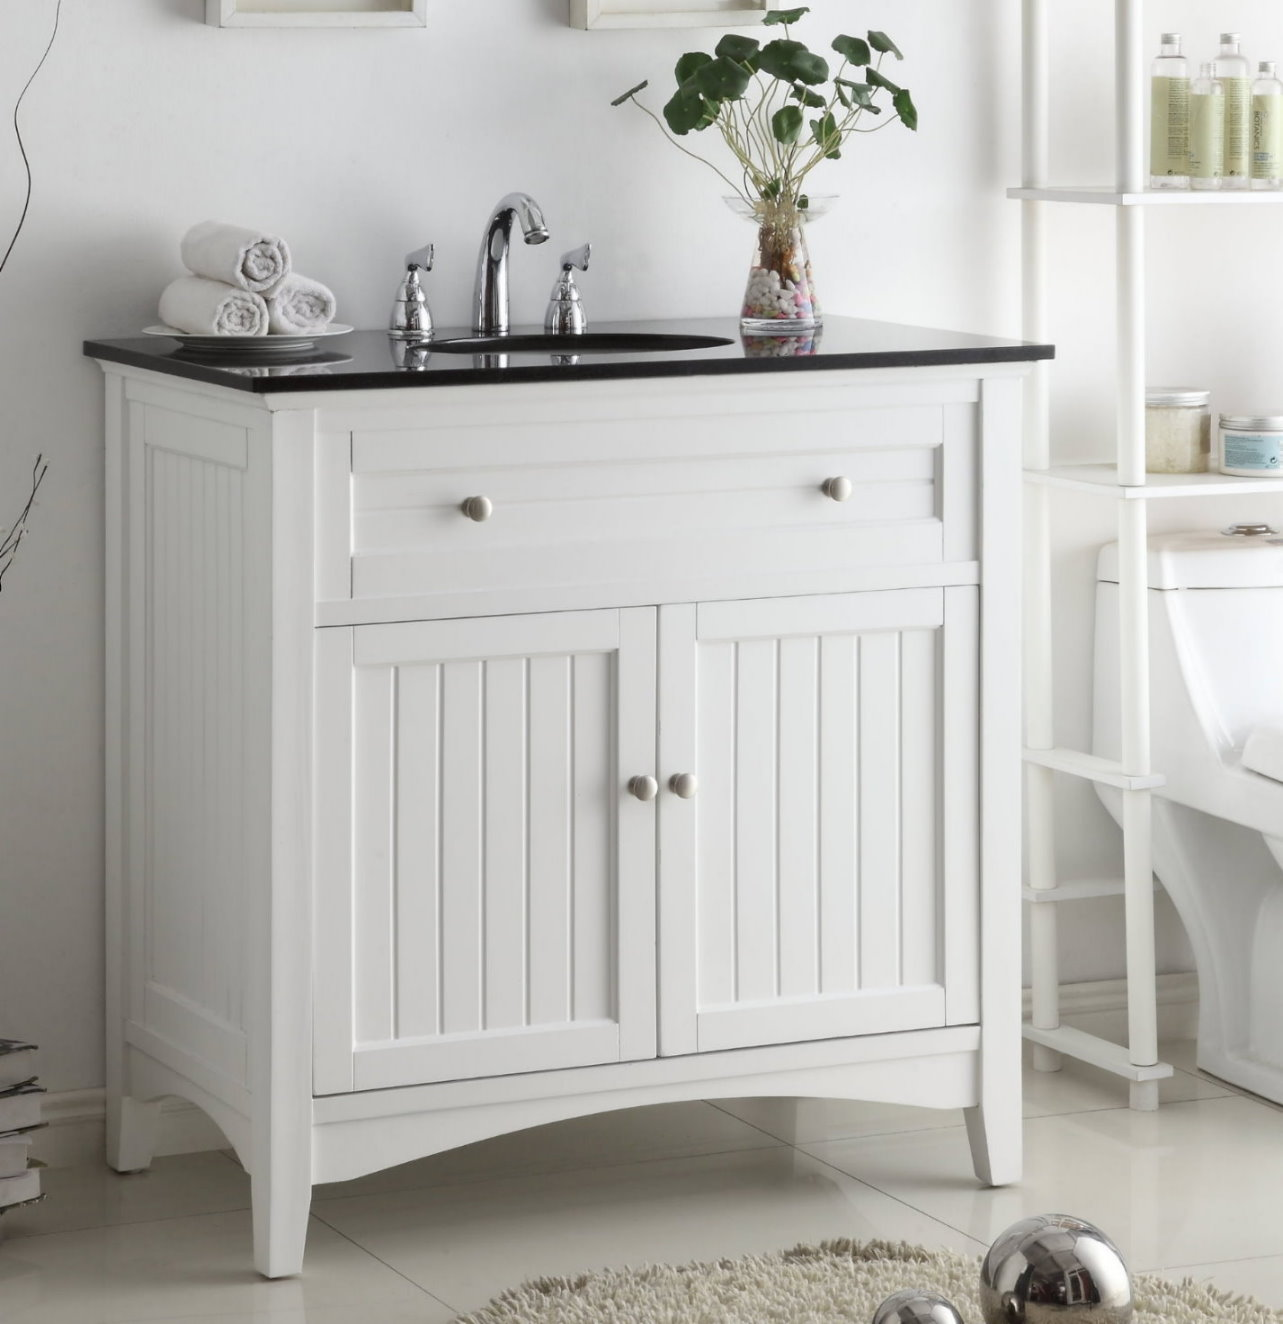 37 Inch Bathroom Vanity Cottage Beach Style Beadboard White Color 37 Wx21 Dx37 H Ccf47531